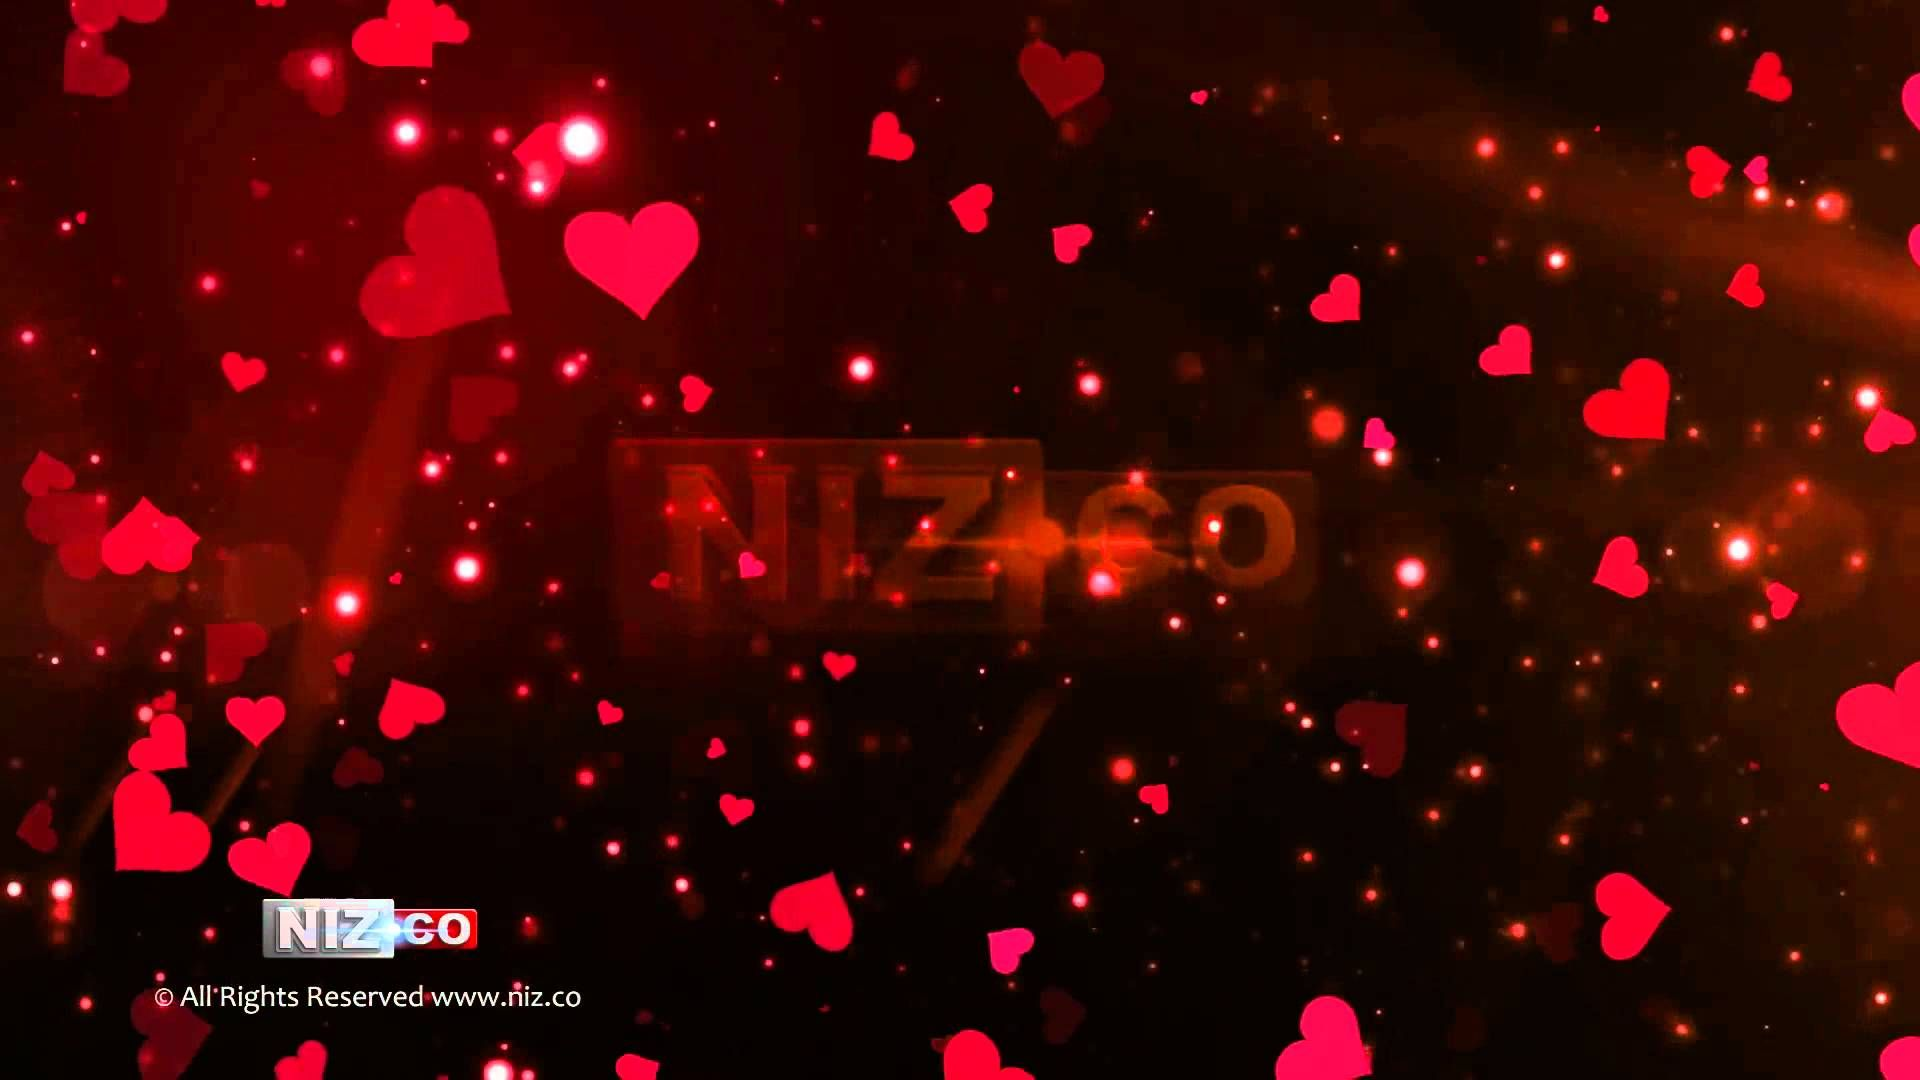 Flying Hearts Royalty Free Background Loop Hd 1080p Light Background Images Photoshop Backgrounds Free Free Video Background